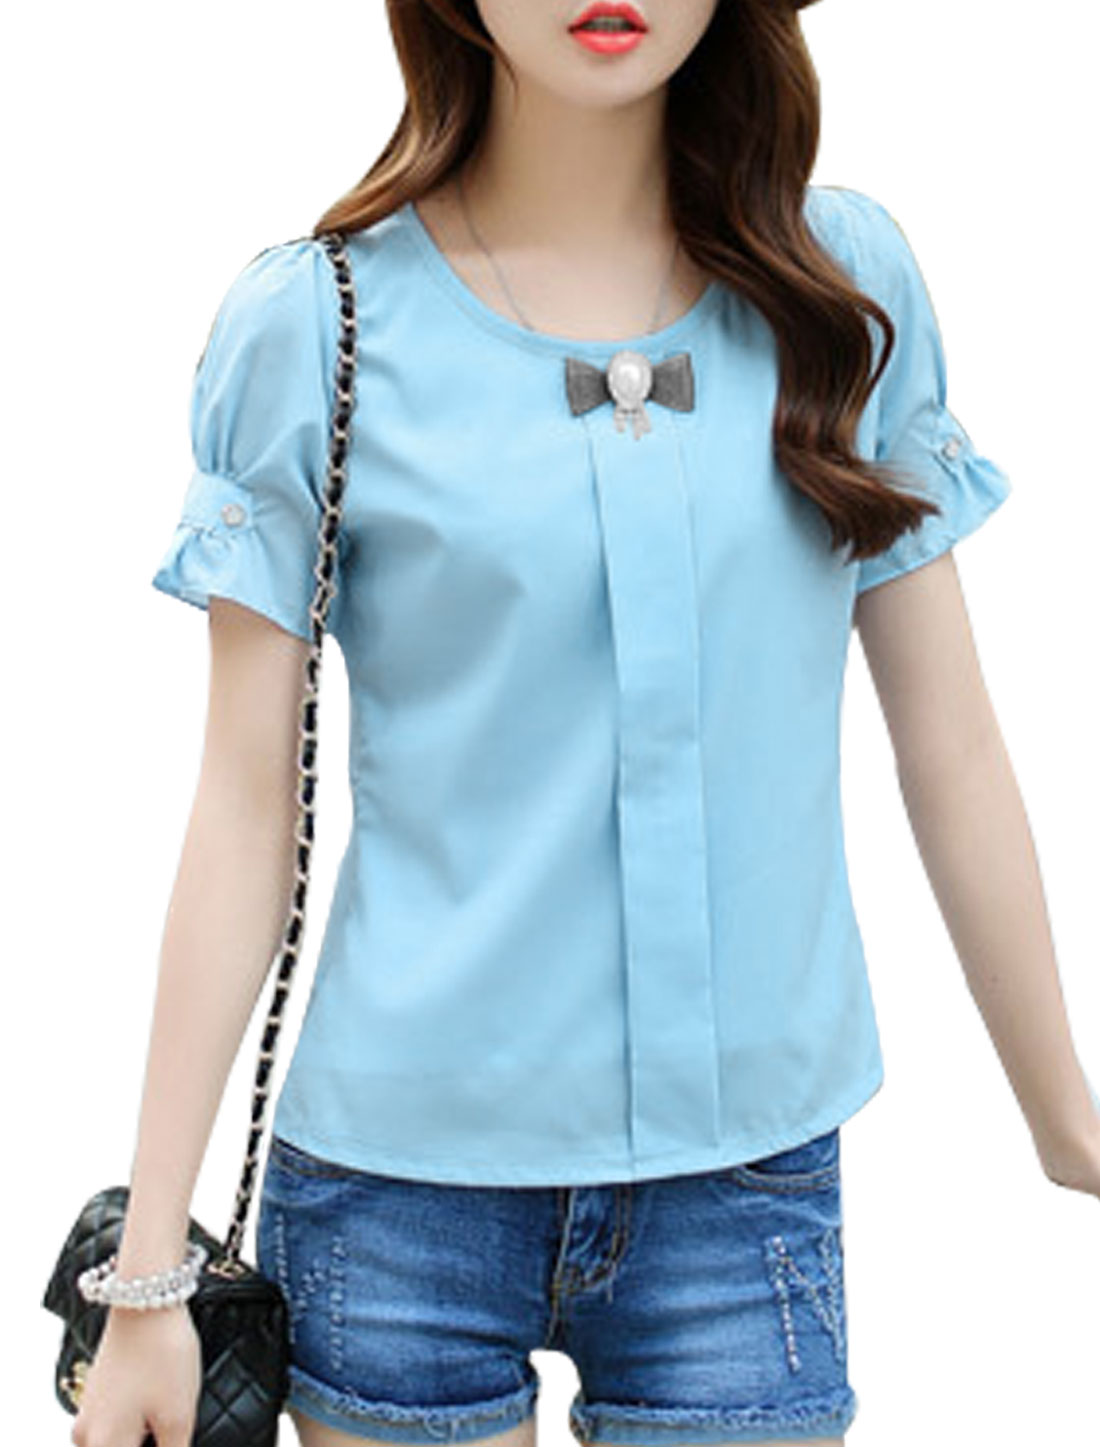 Woman Round Neck Short Sleeves Button Decor Top w Brooch Light Blue XS